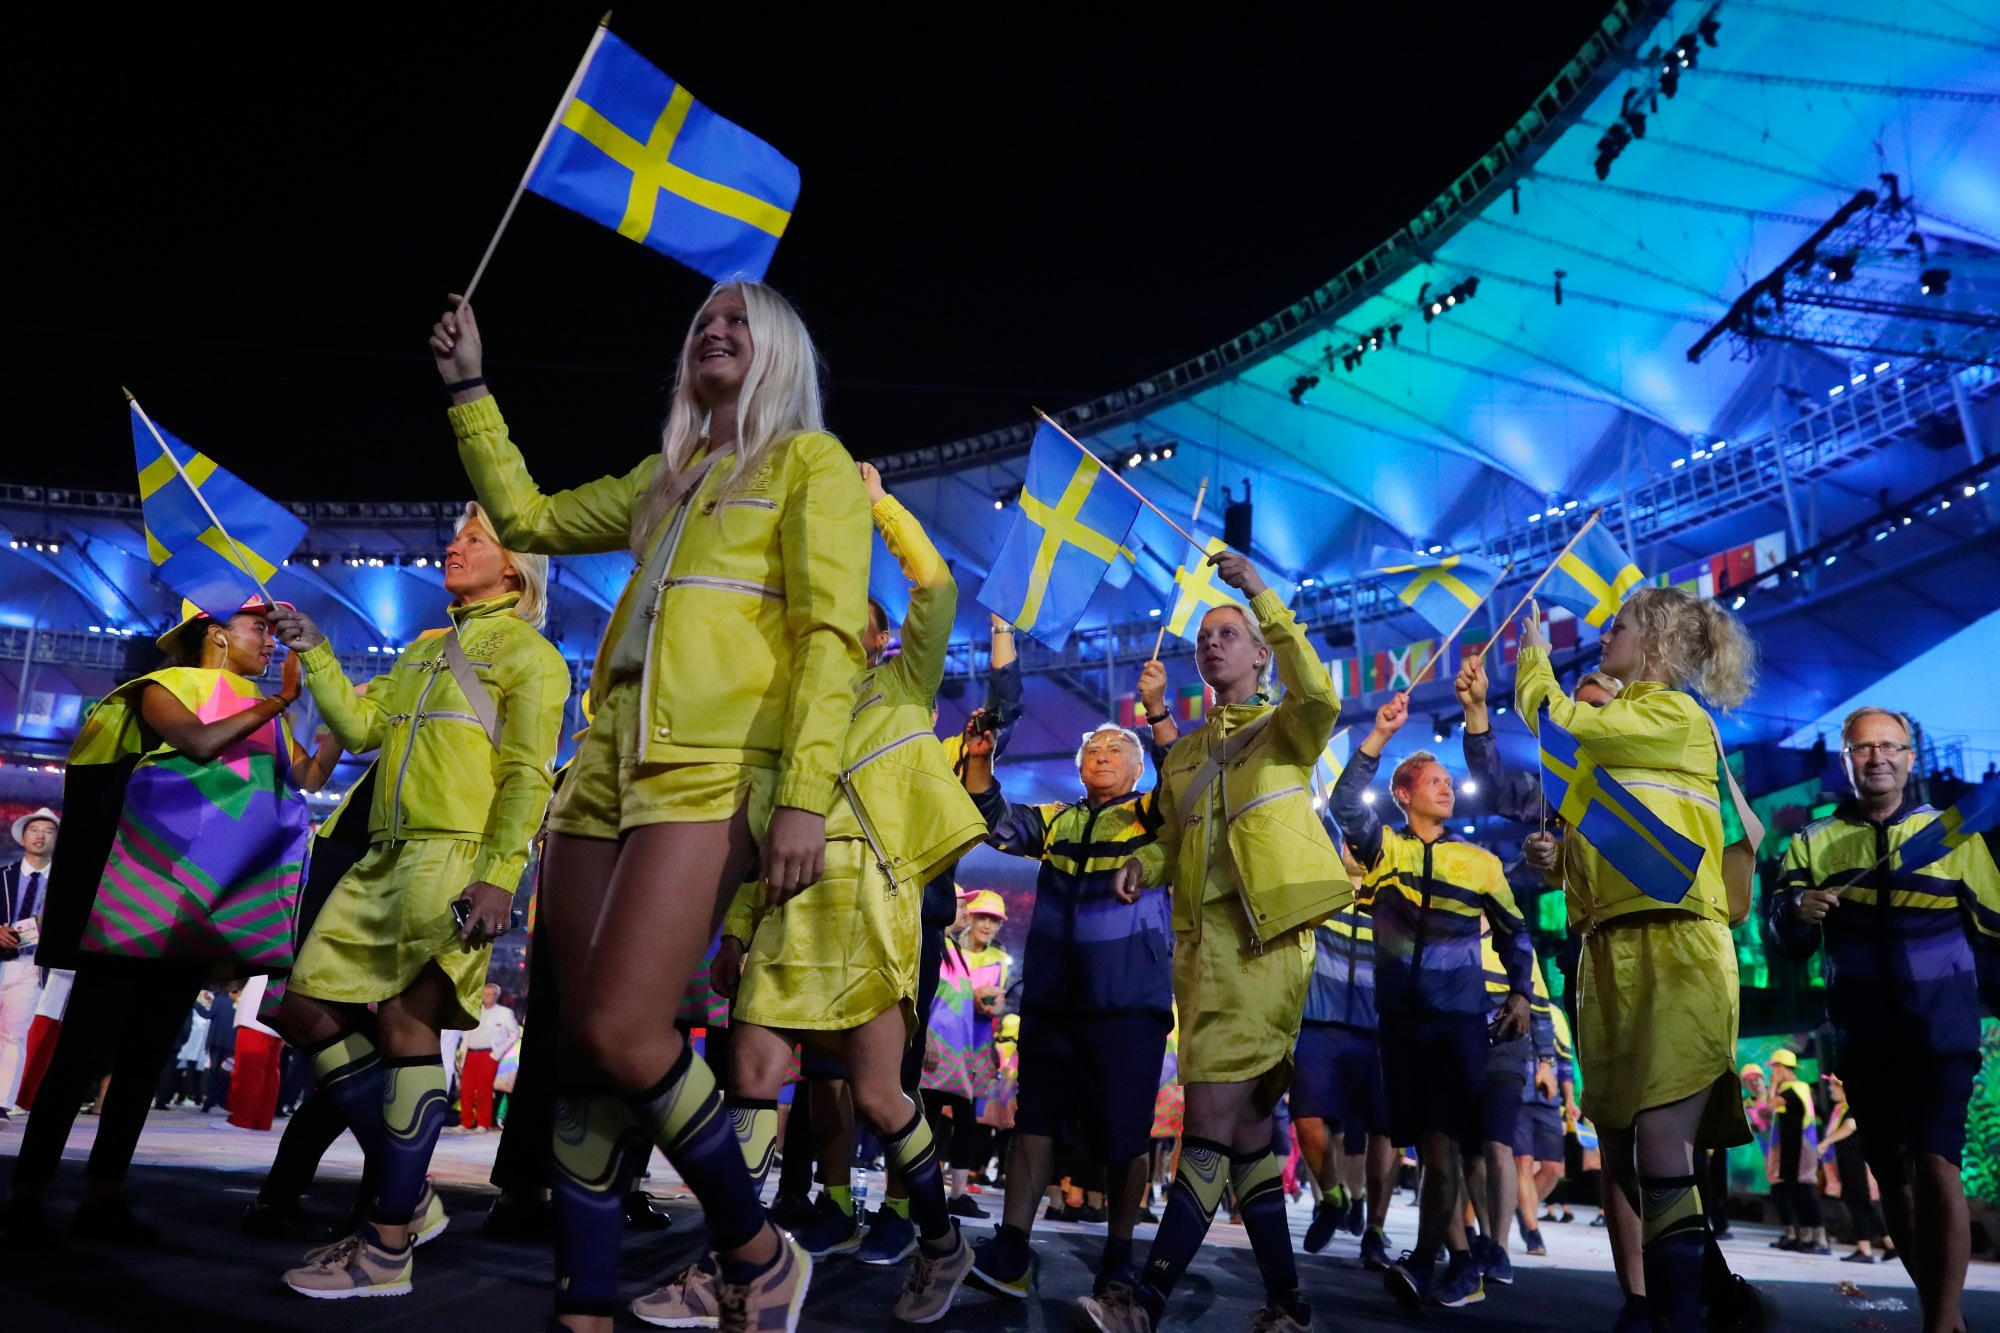 RIO DE JANEIRO, BRAZIL - AUGUST 05:  Members of Sweden participate during the Opening Ceremony of the Rio 2016 Olympic Games at Maracana Stadium on August 5, 2016 in Rio de Janeiro, Brazil.  (Photo by Jamie Squire/Getty Images)